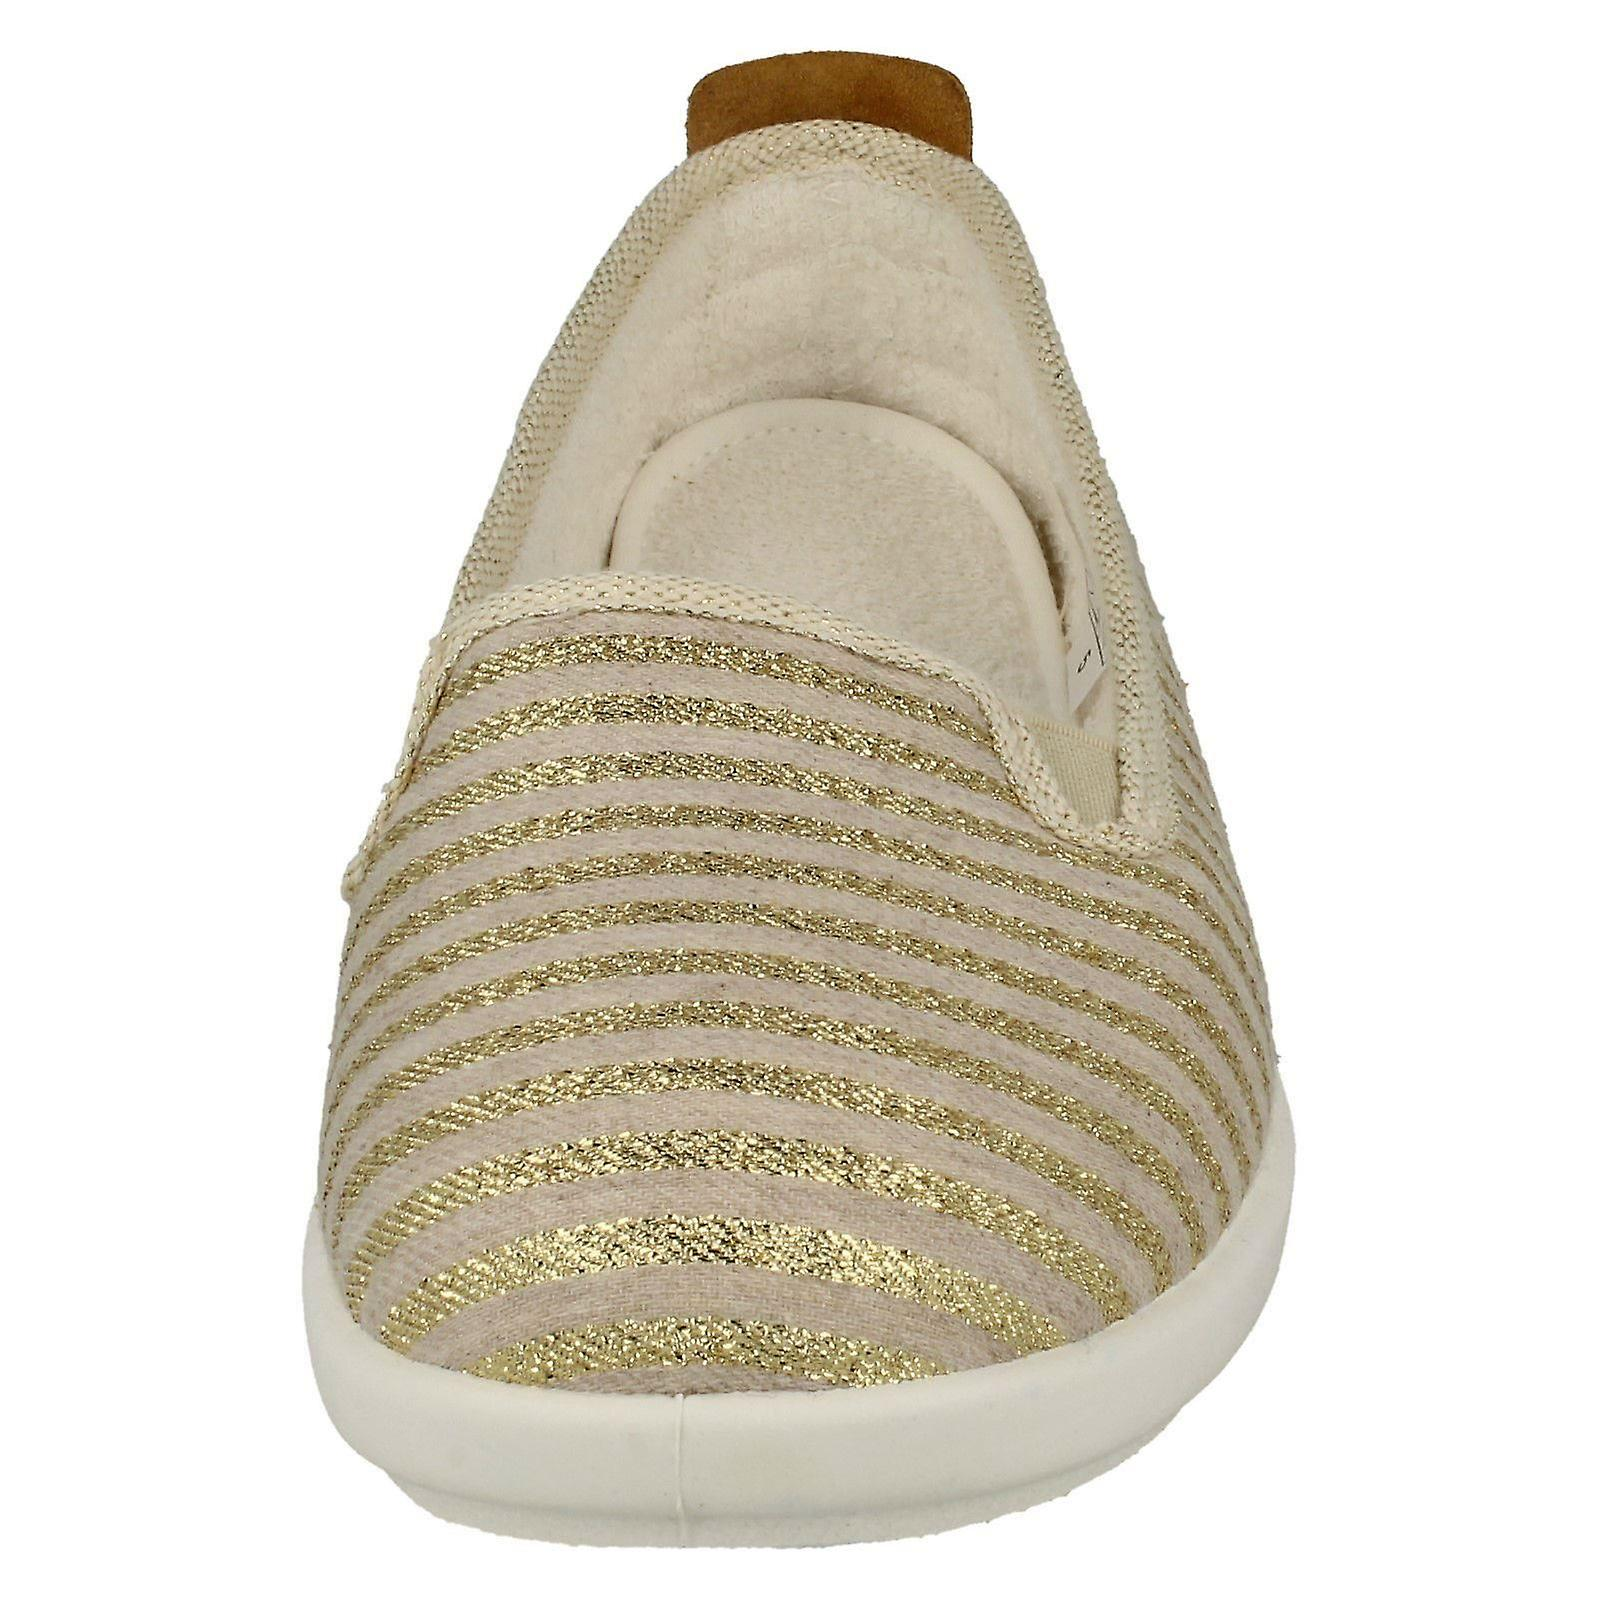 V UK B Gold EU Stripe Textile 72224G Casual Size Cortney 5 US Size 7 37 Easy Size 5 Ladies Beige Loafers g6v0Onwq